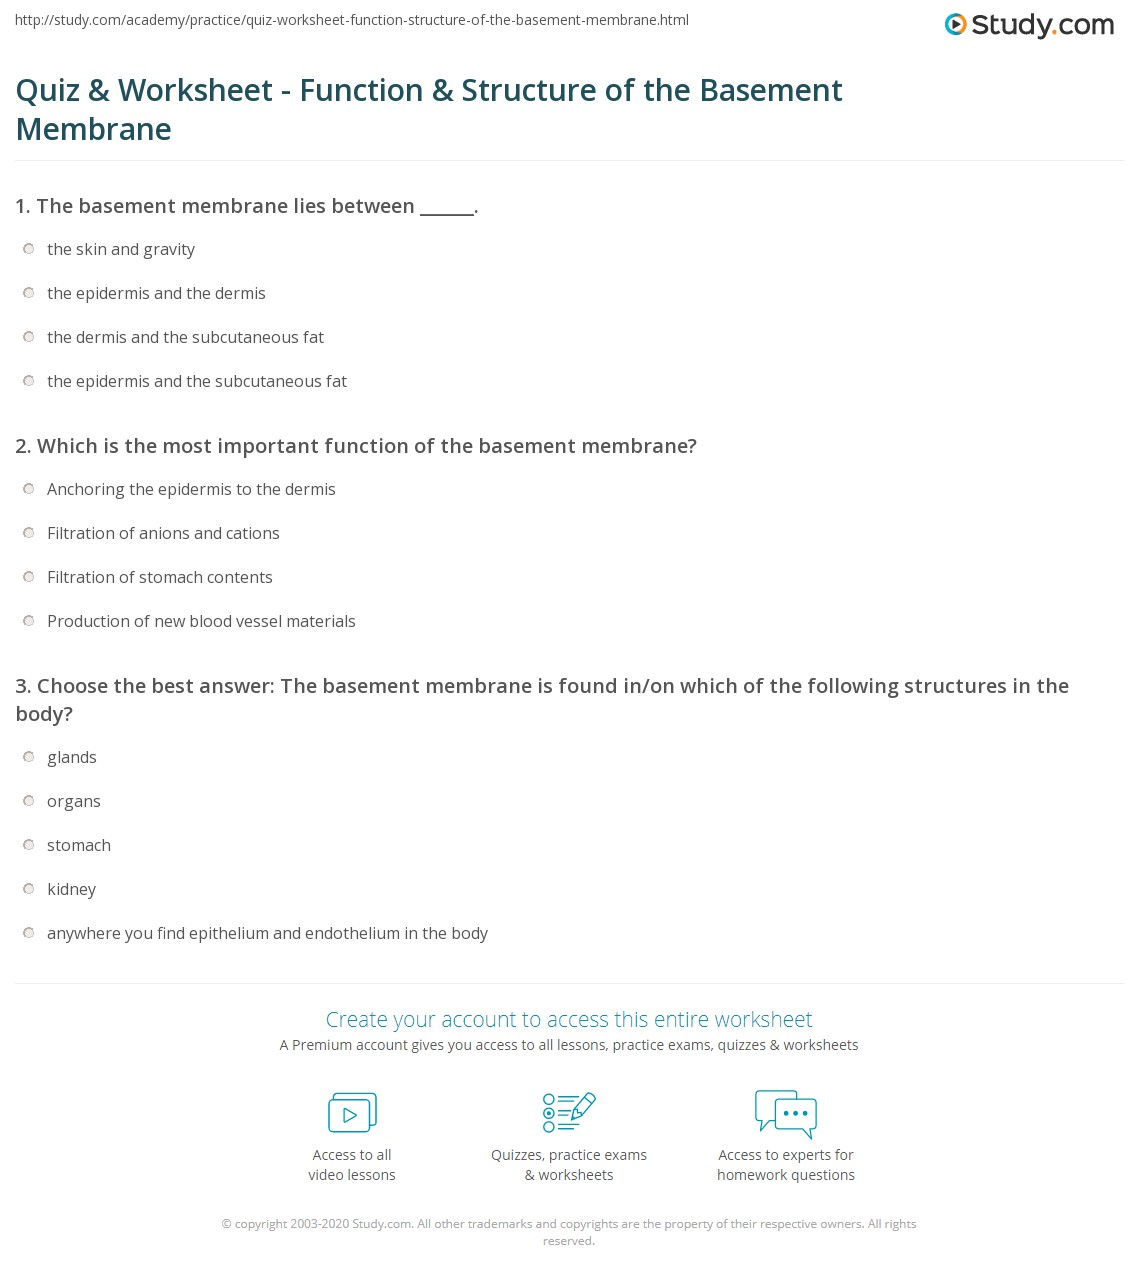 Function & Structure Of The Basement